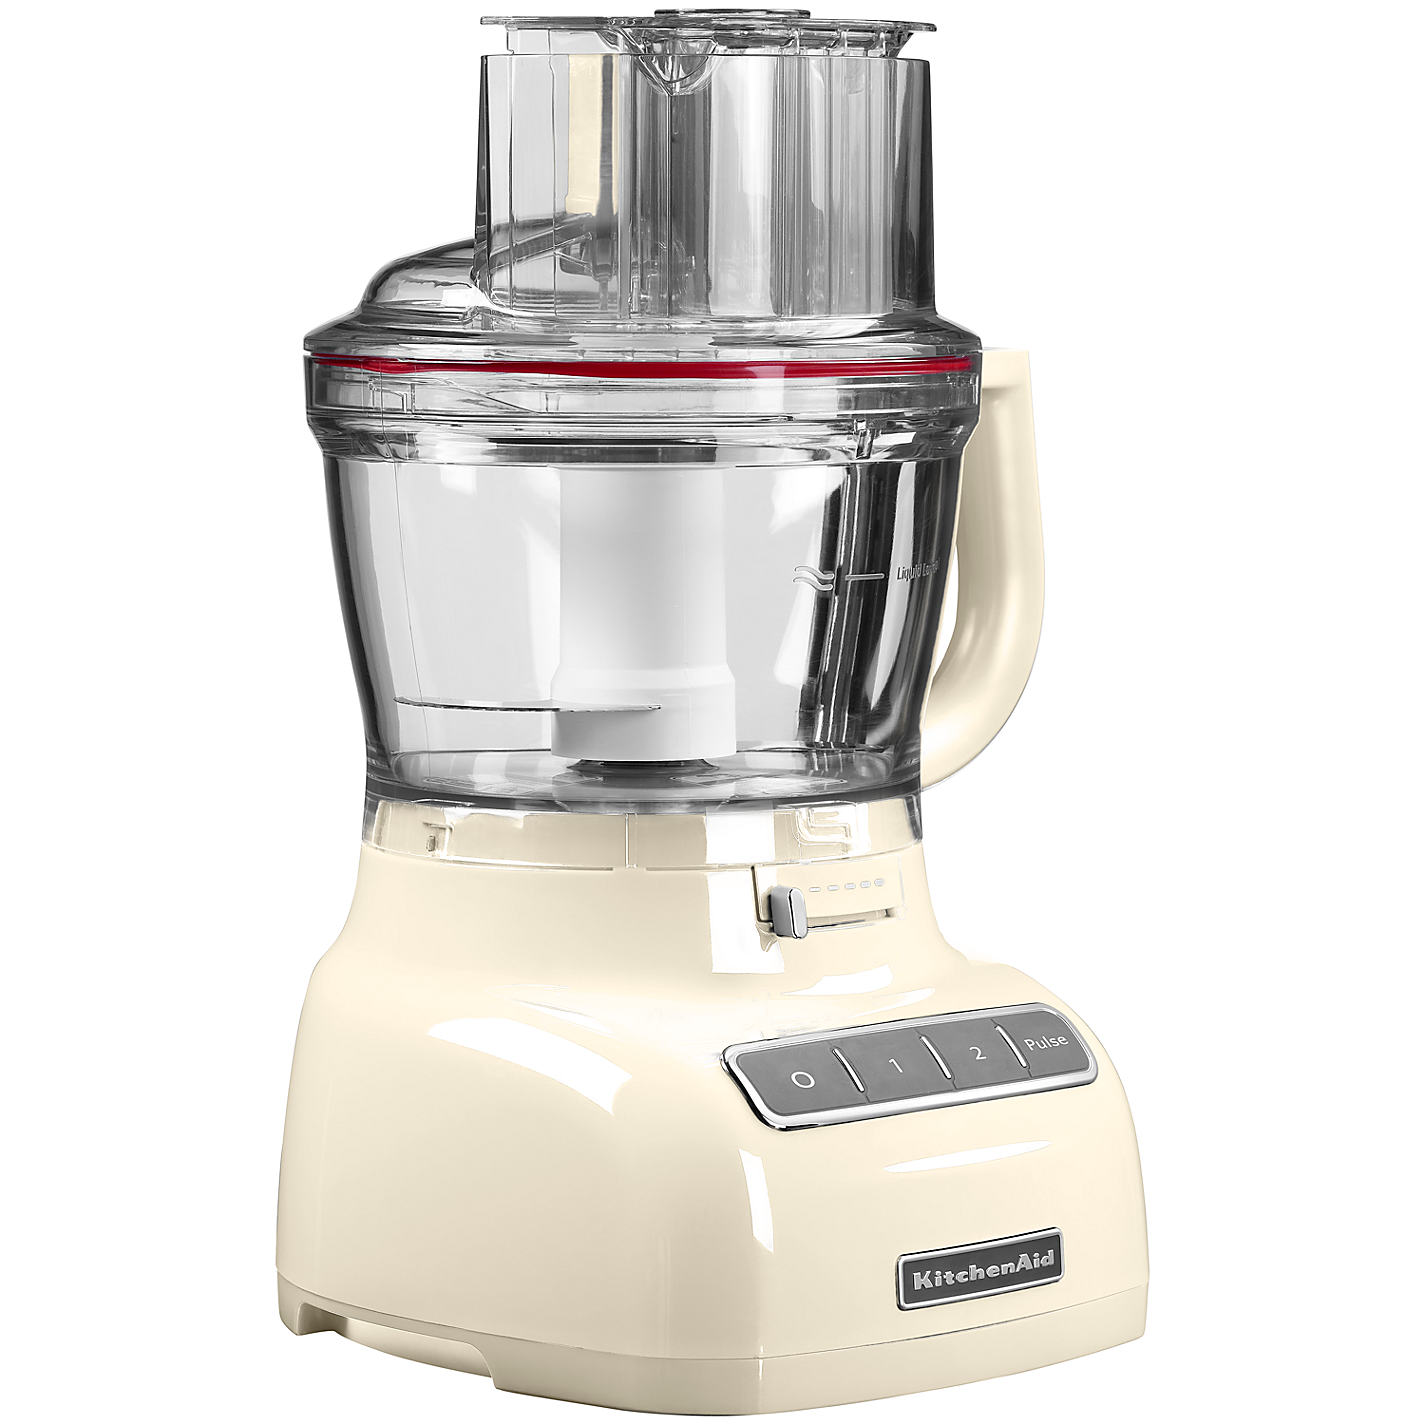 kitchenaid 5kfp1335bac0 3 1l 300w food processor ebay. Black Bedroom Furniture Sets. Home Design Ideas